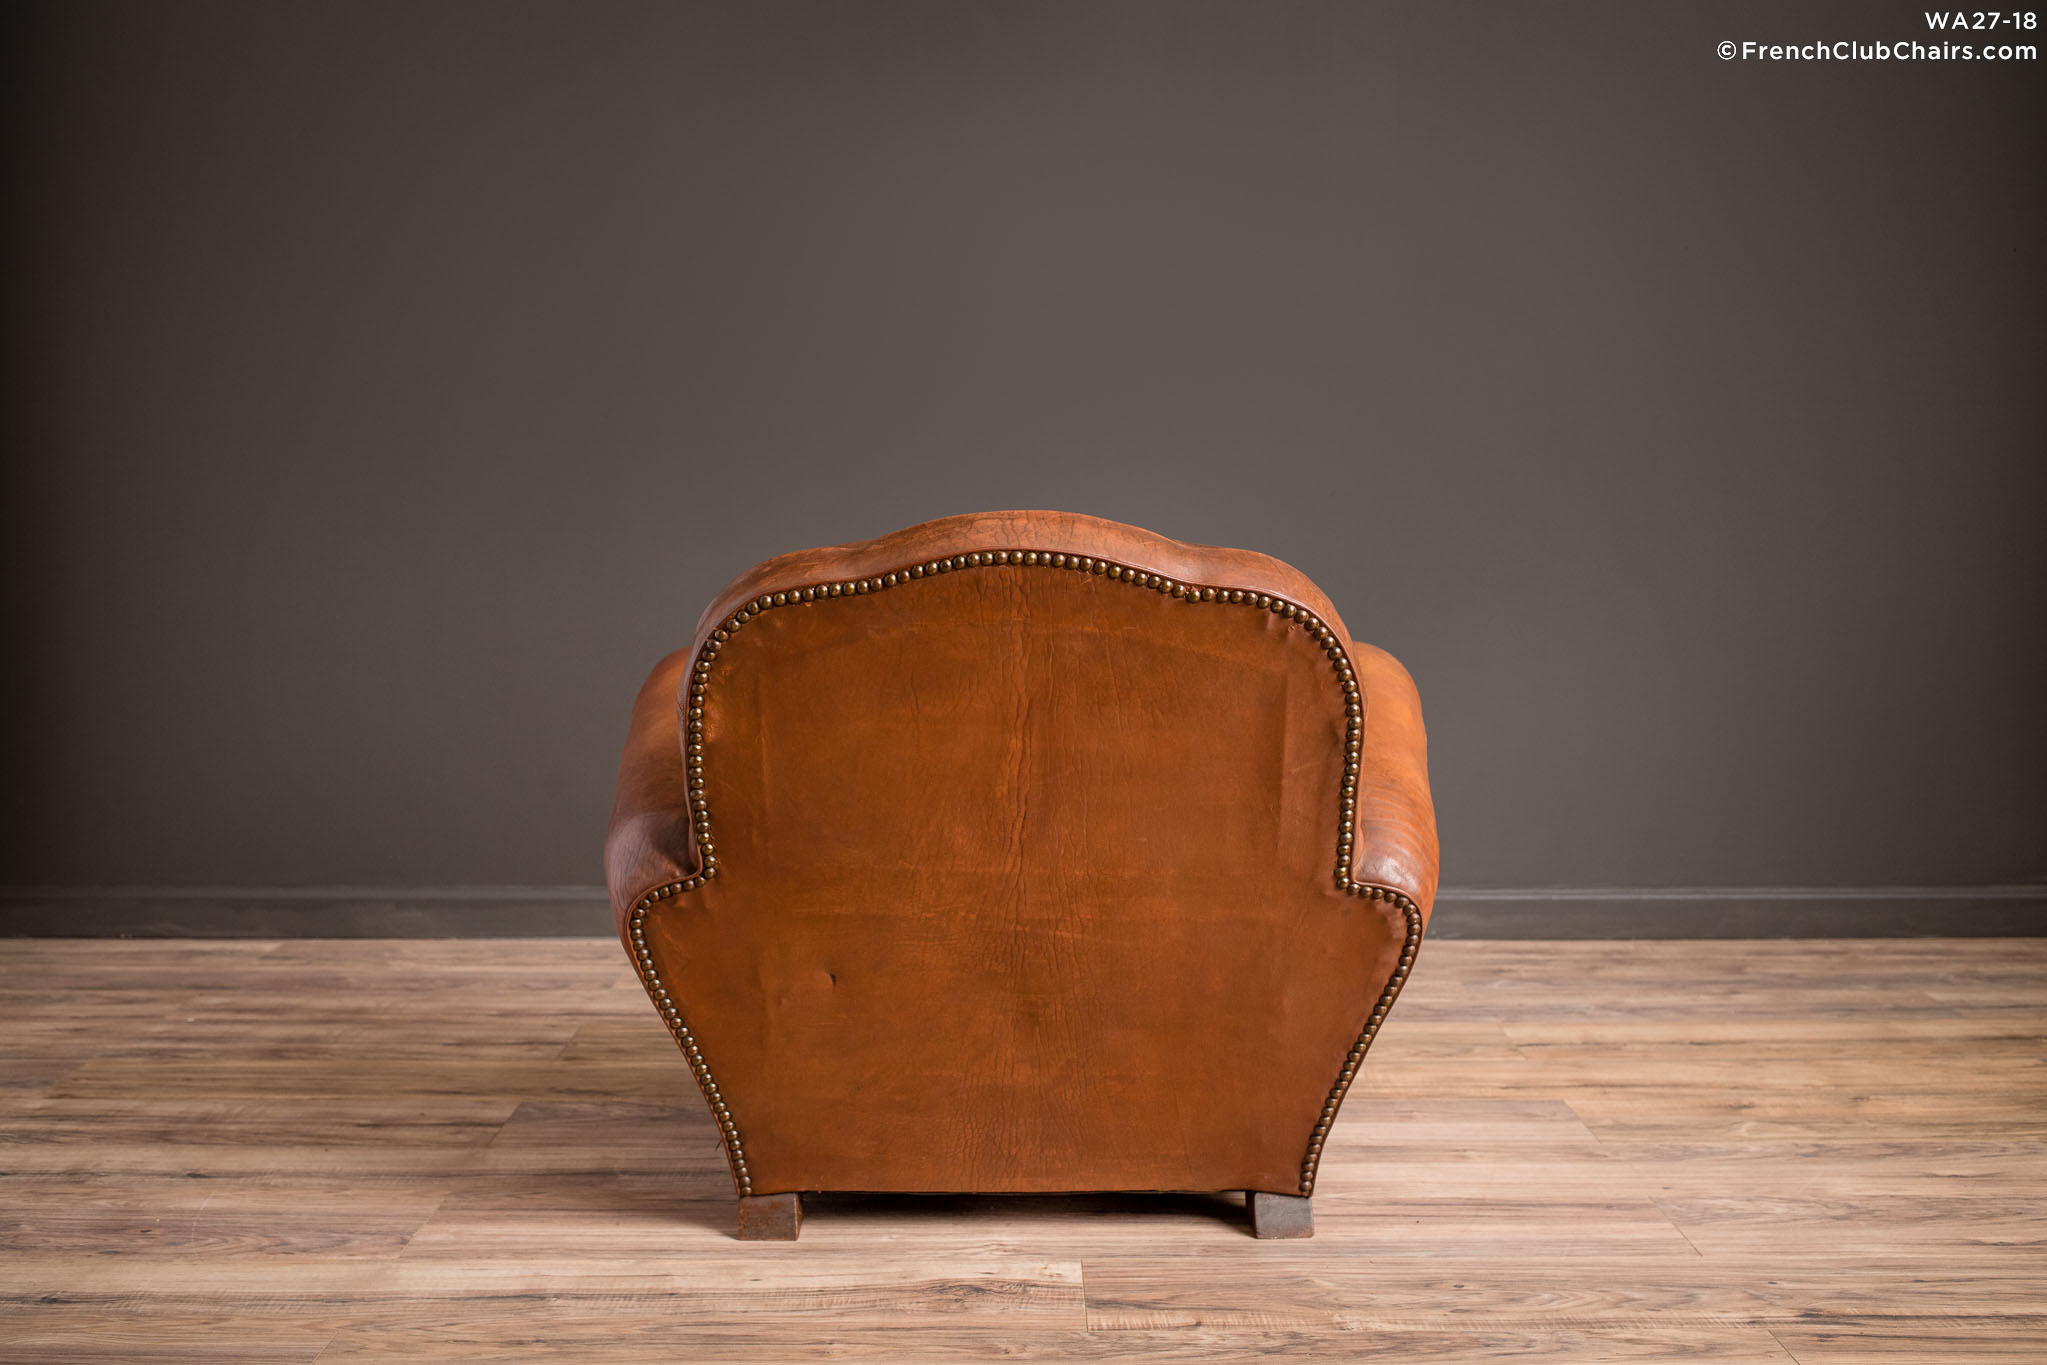 WA_27-18_St_Ouen_Trefle_Solo_R_2BK-v01-williams-antiks-leather-french-club-chair-wa_fcccom